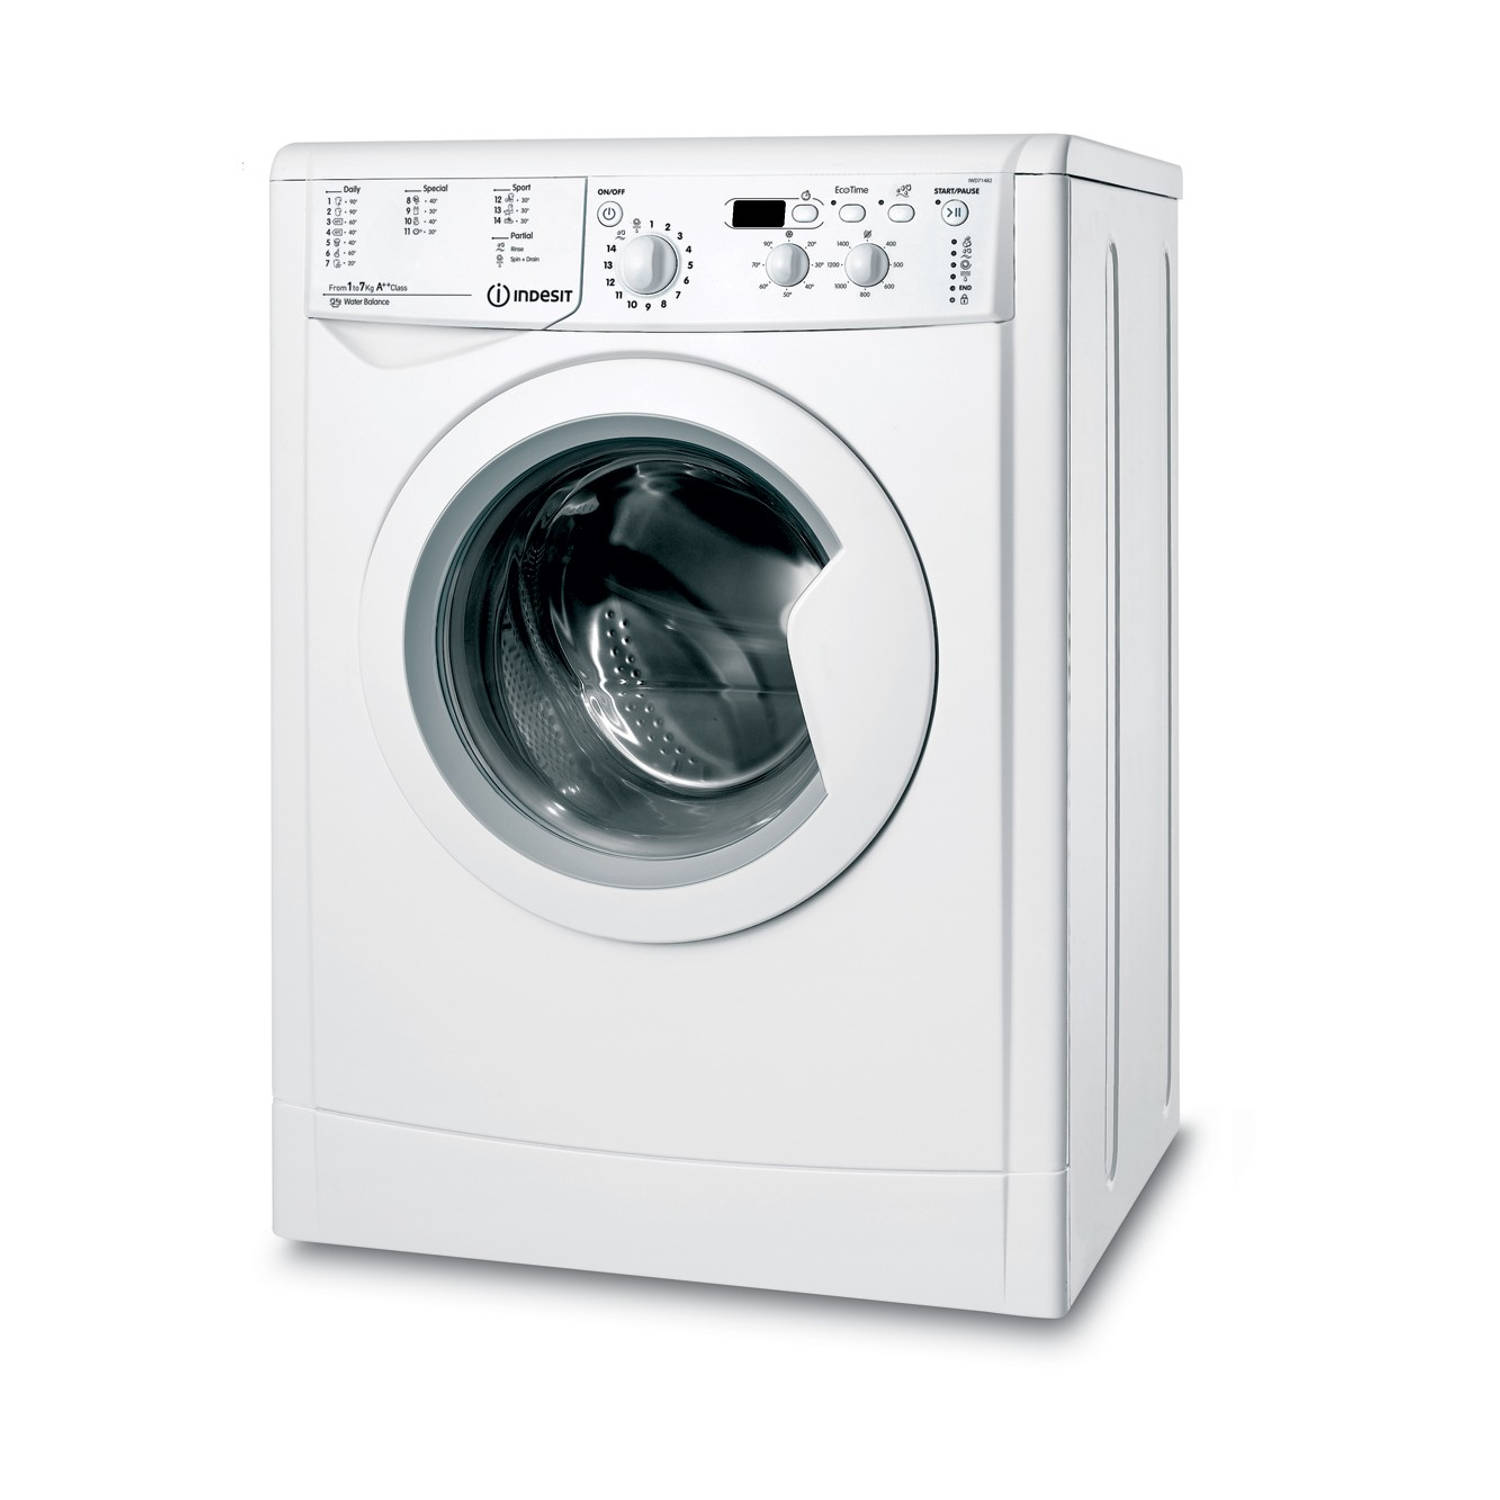 Indesit IWD 71482 B (EU) wasmachines - Wit